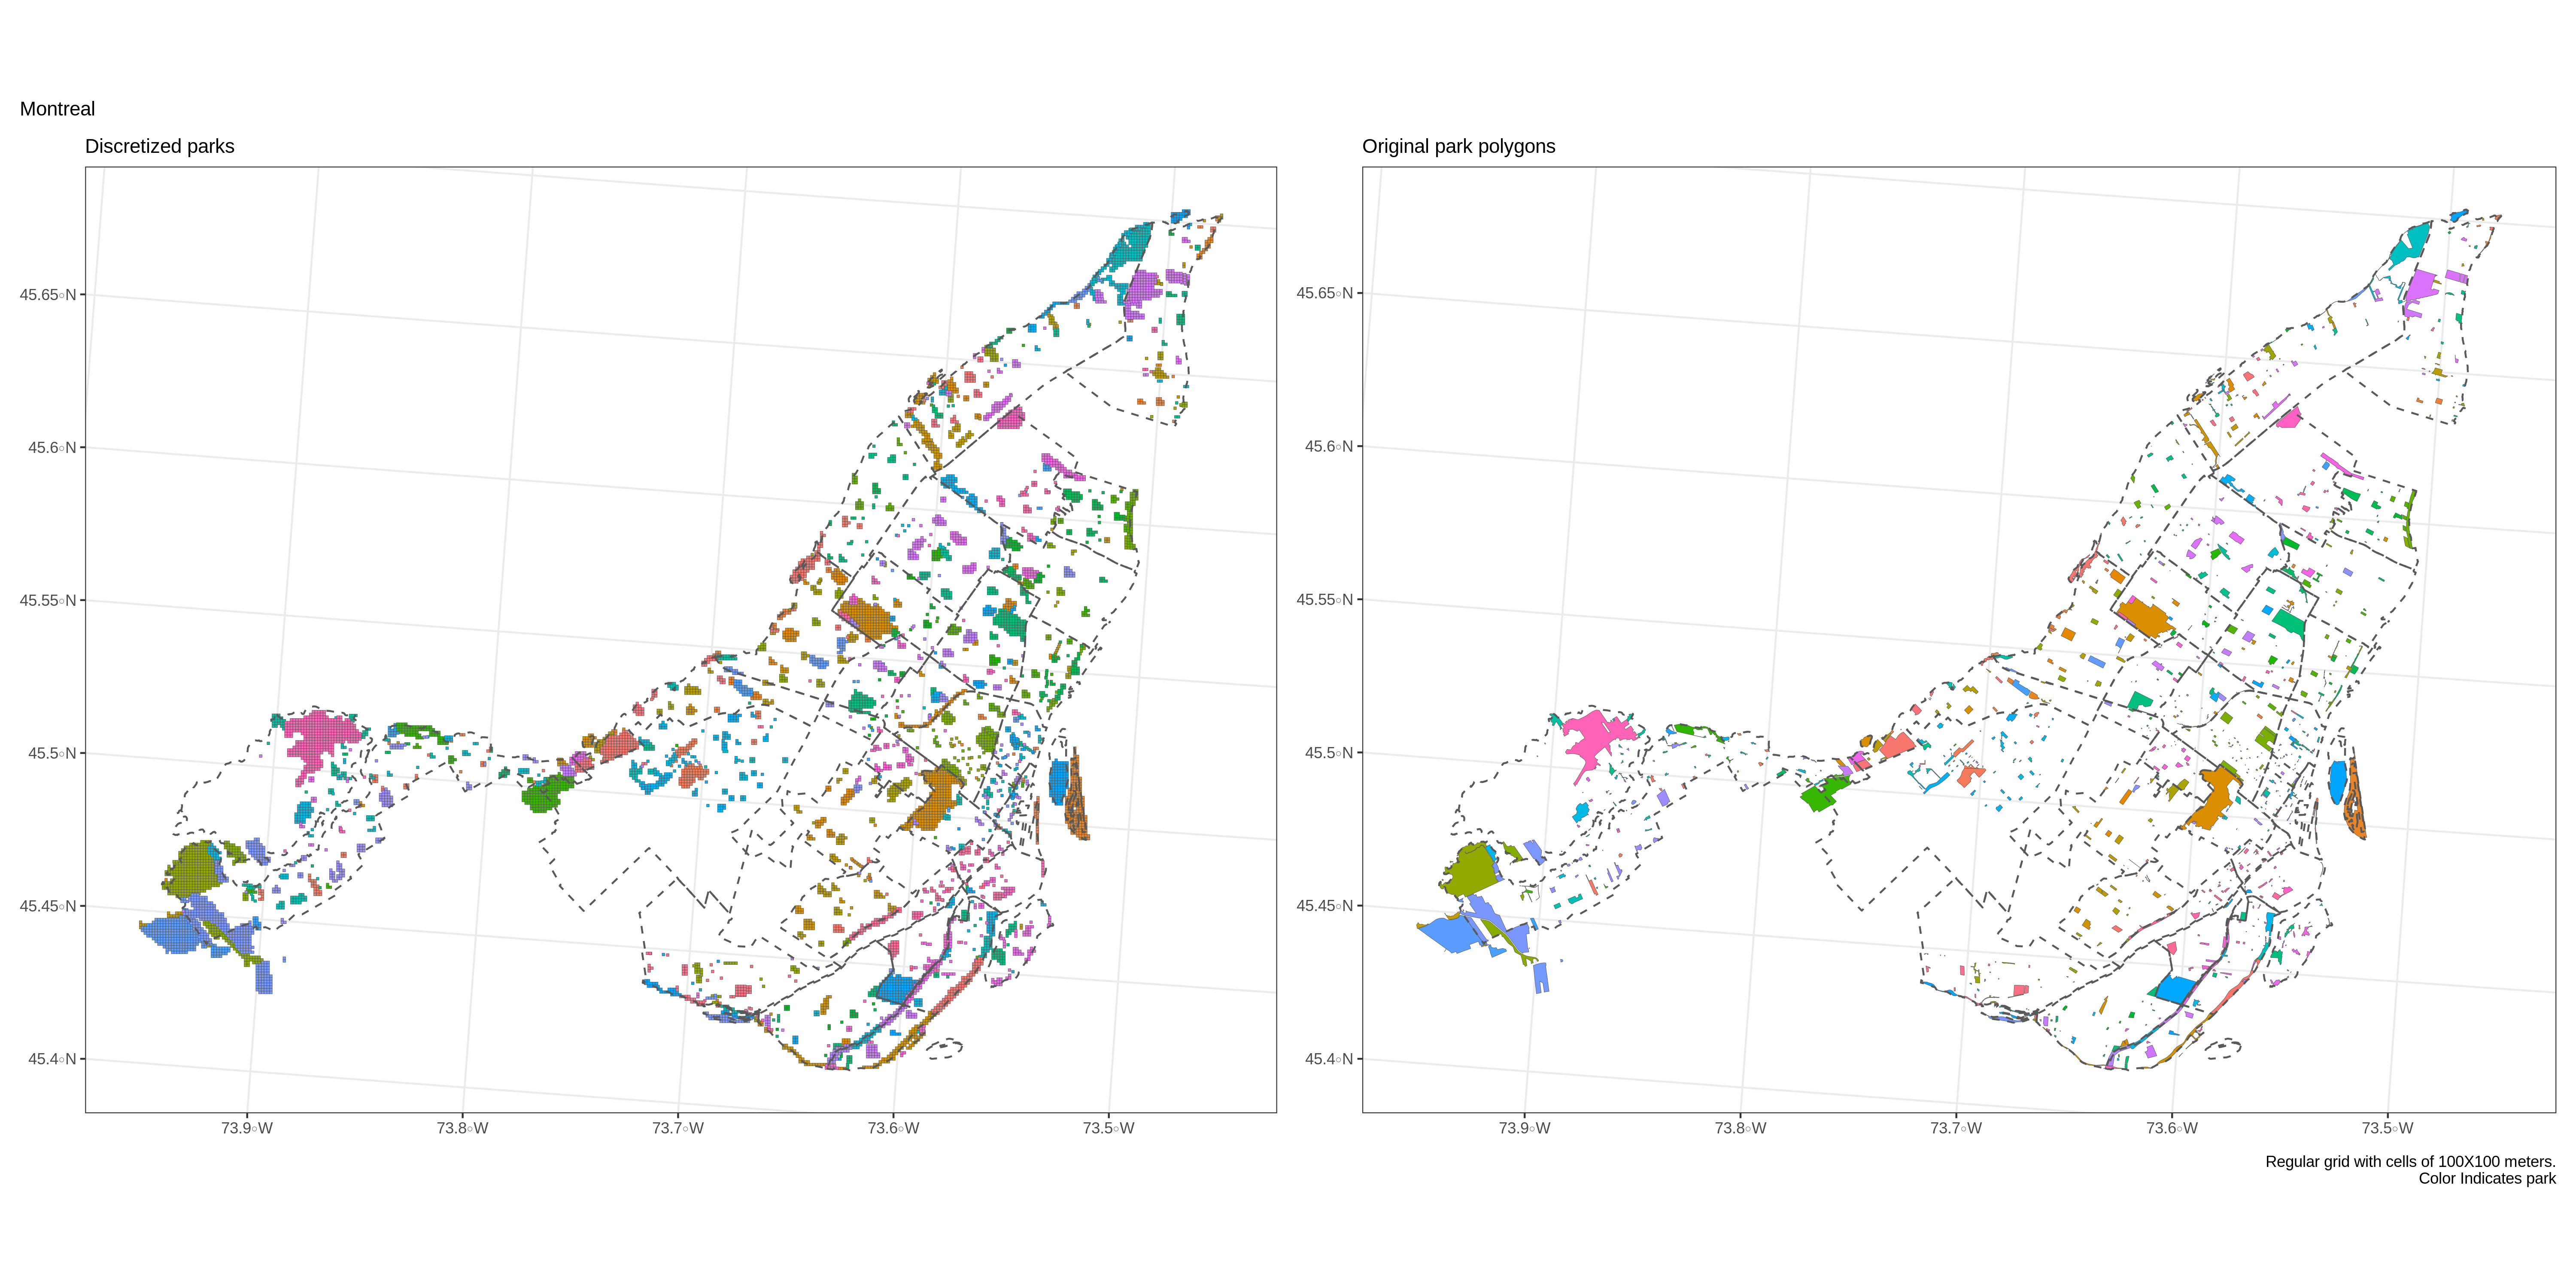 Given a sufficiently fine grid, the difference between the original park area (right) and the discretized area (left) becomes negligible. Even if the voronoi algorithm scales well with the number of points, this step can become long for very large regions and very fine grids. Regular cells of 1 ha (100 square meters) used in the figure.